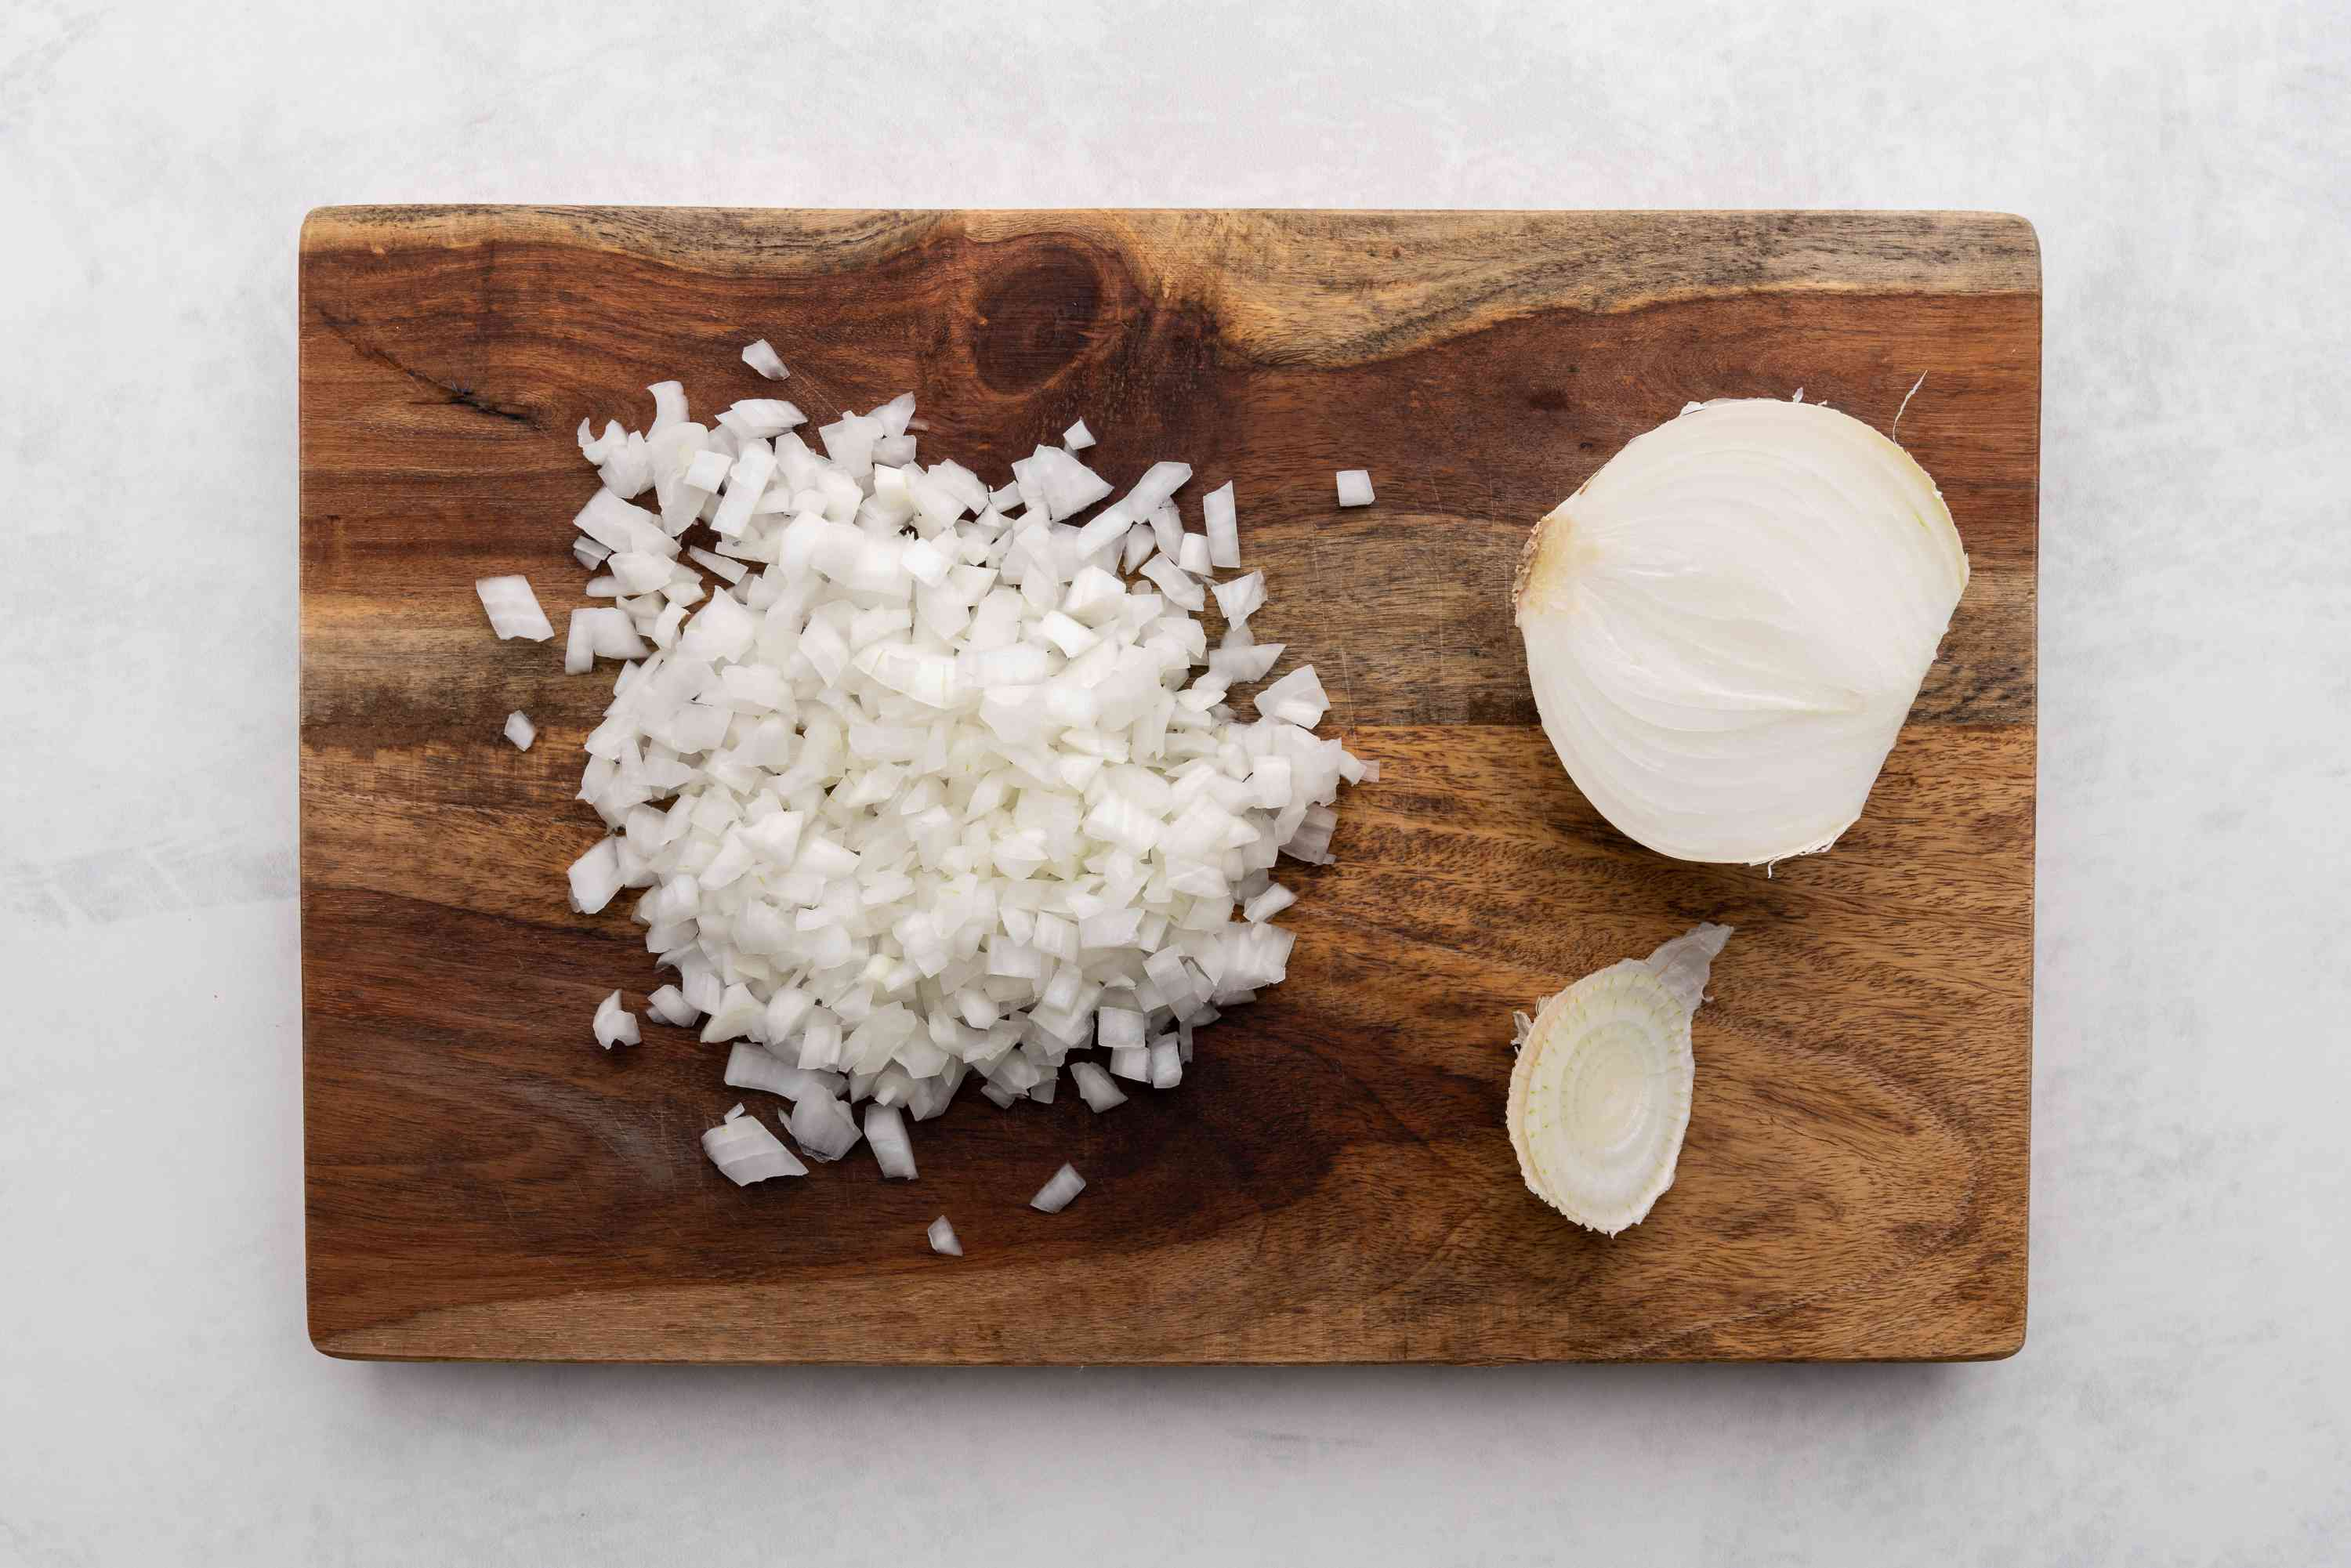 onion diced into pieces